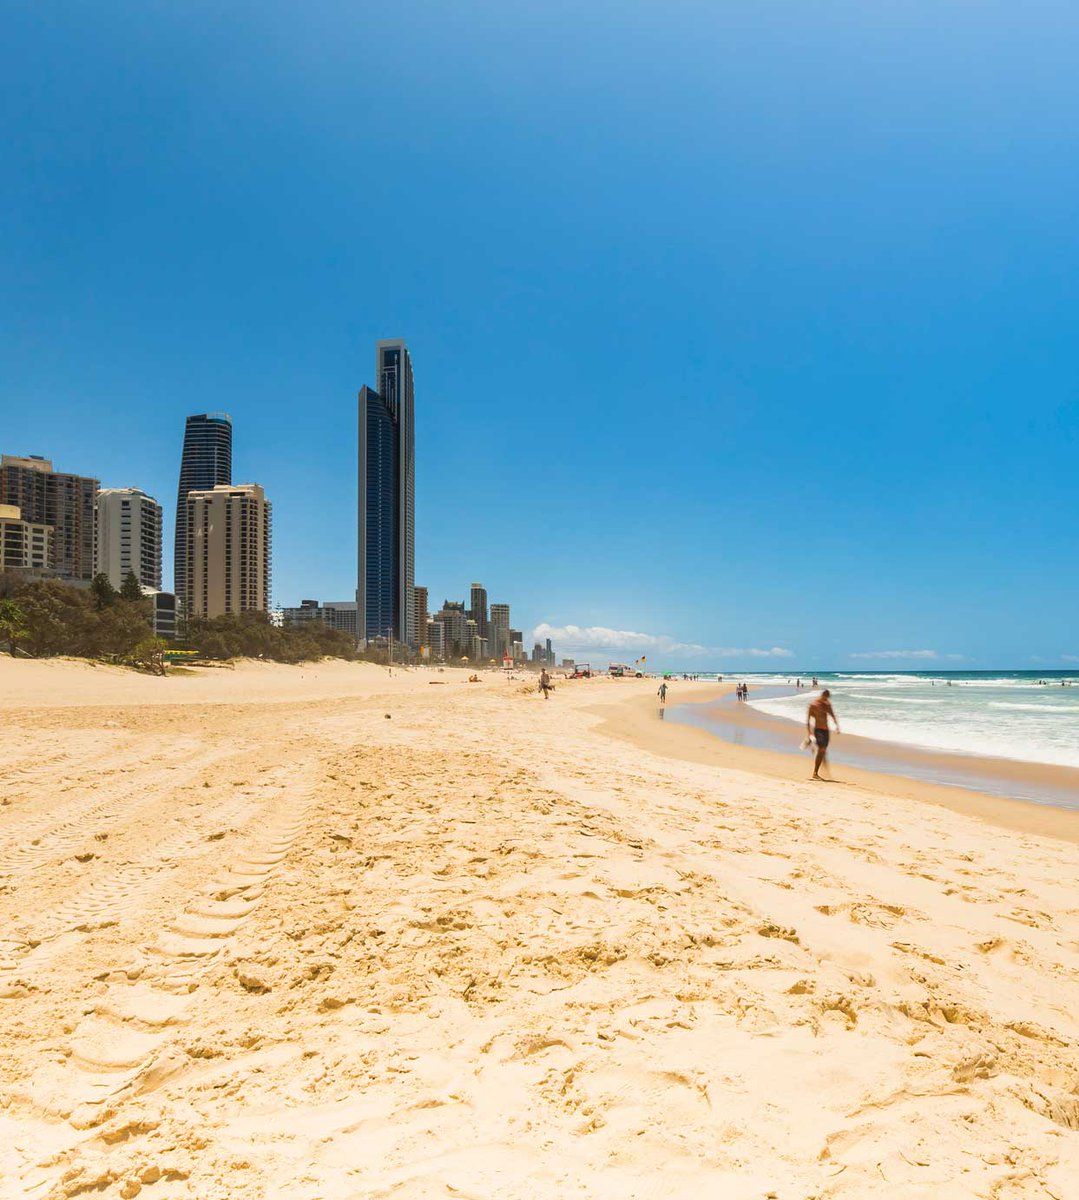 Have you ever asked which of the Gold Coast's beaches are the best? Well we did, and this is what our extensive study (of sunbathing and lazing) revealed - https://t.co/mbW5cND3SA #goldcoast #bestbeach #surfsup #Australia #sunnytimes https://t.co/DySNqJOwzK